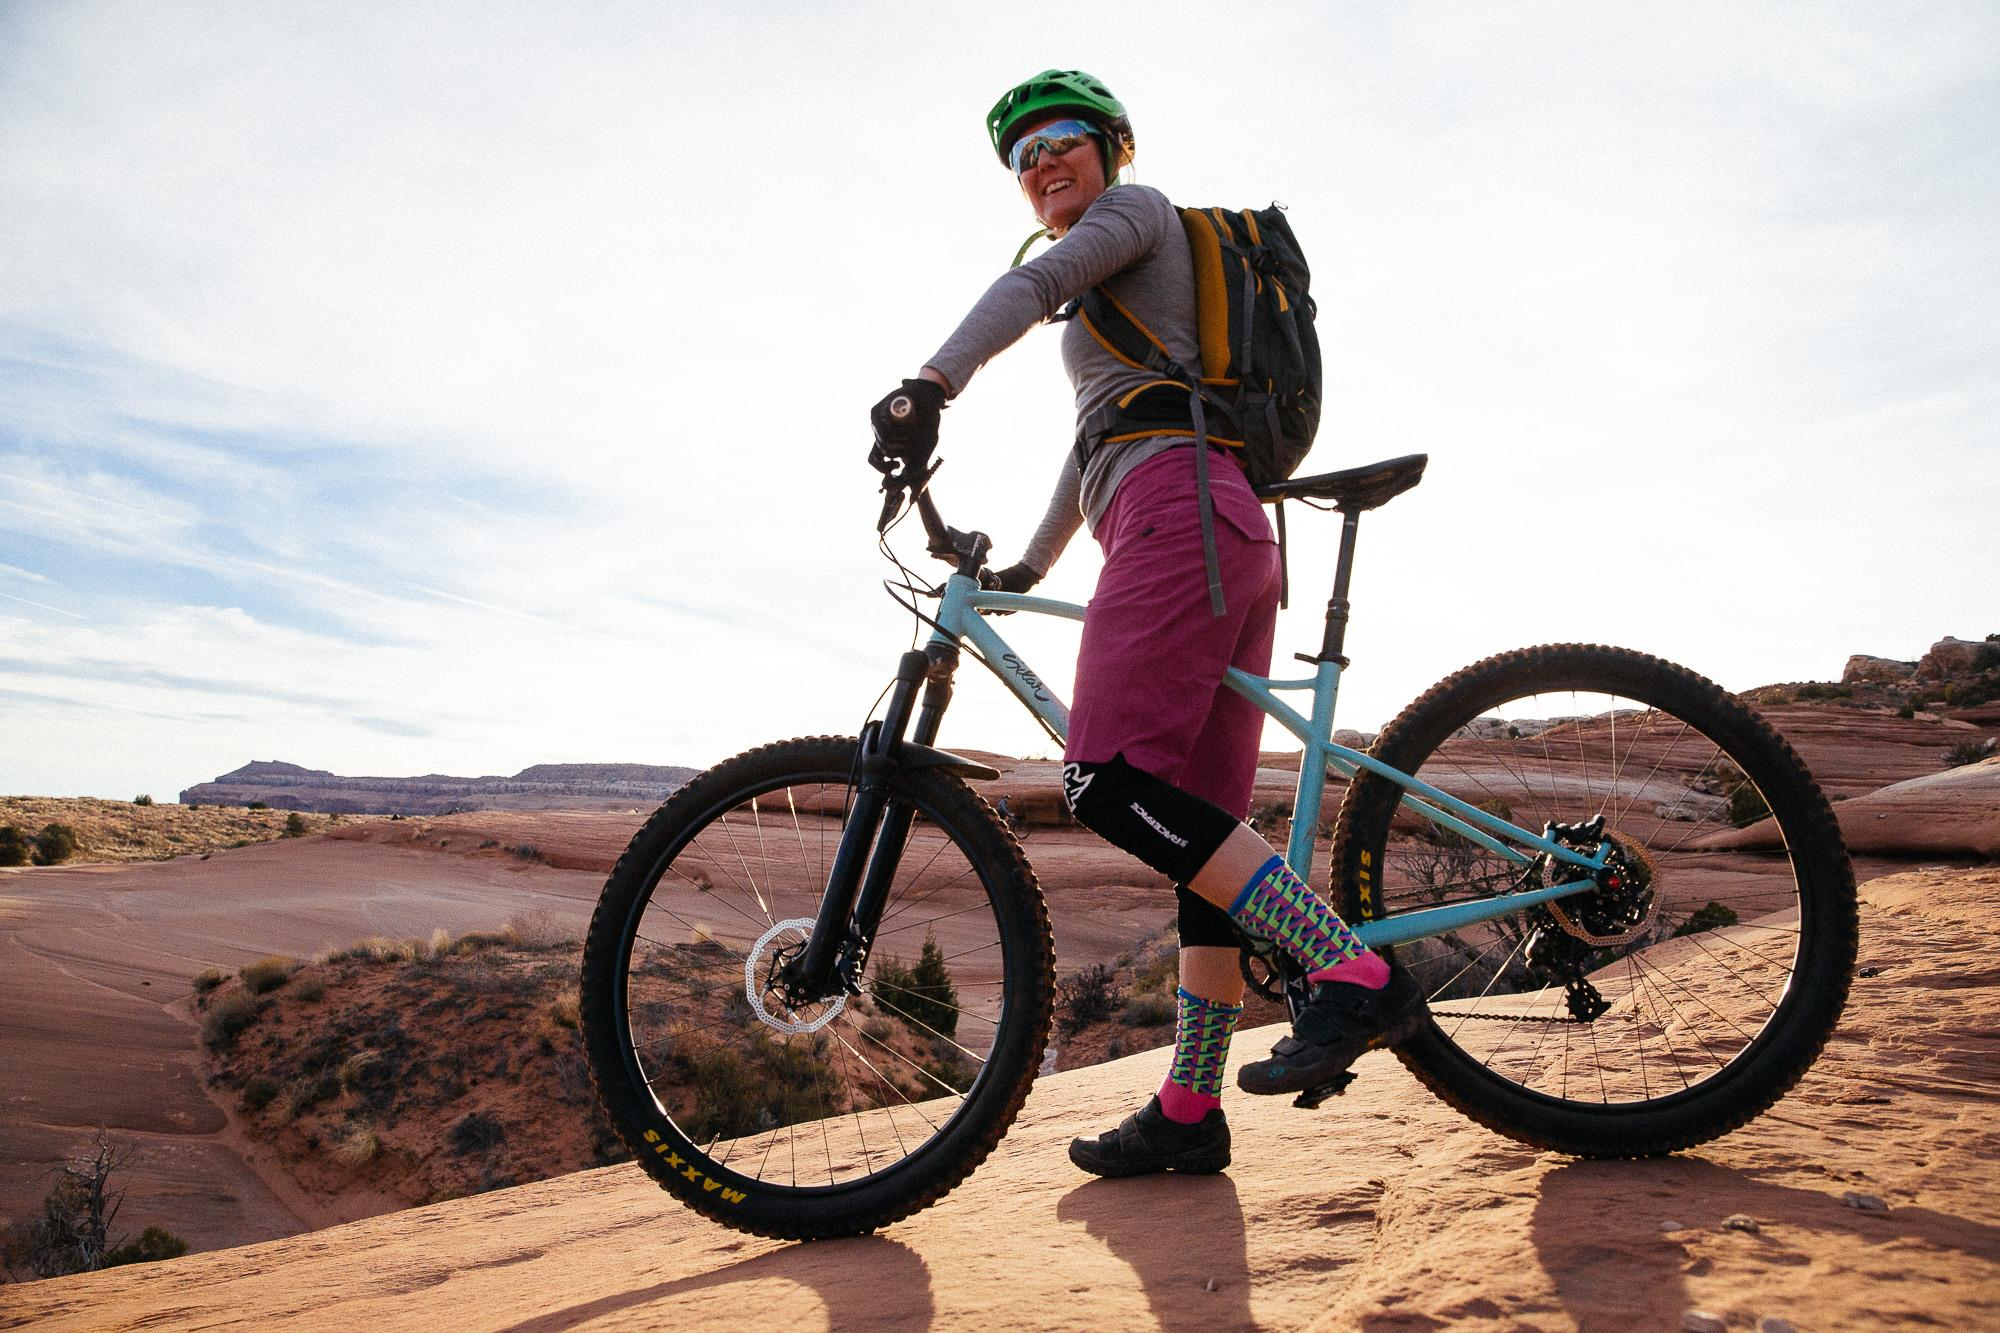 Katie and Her Shreddy Sklar Hardtail